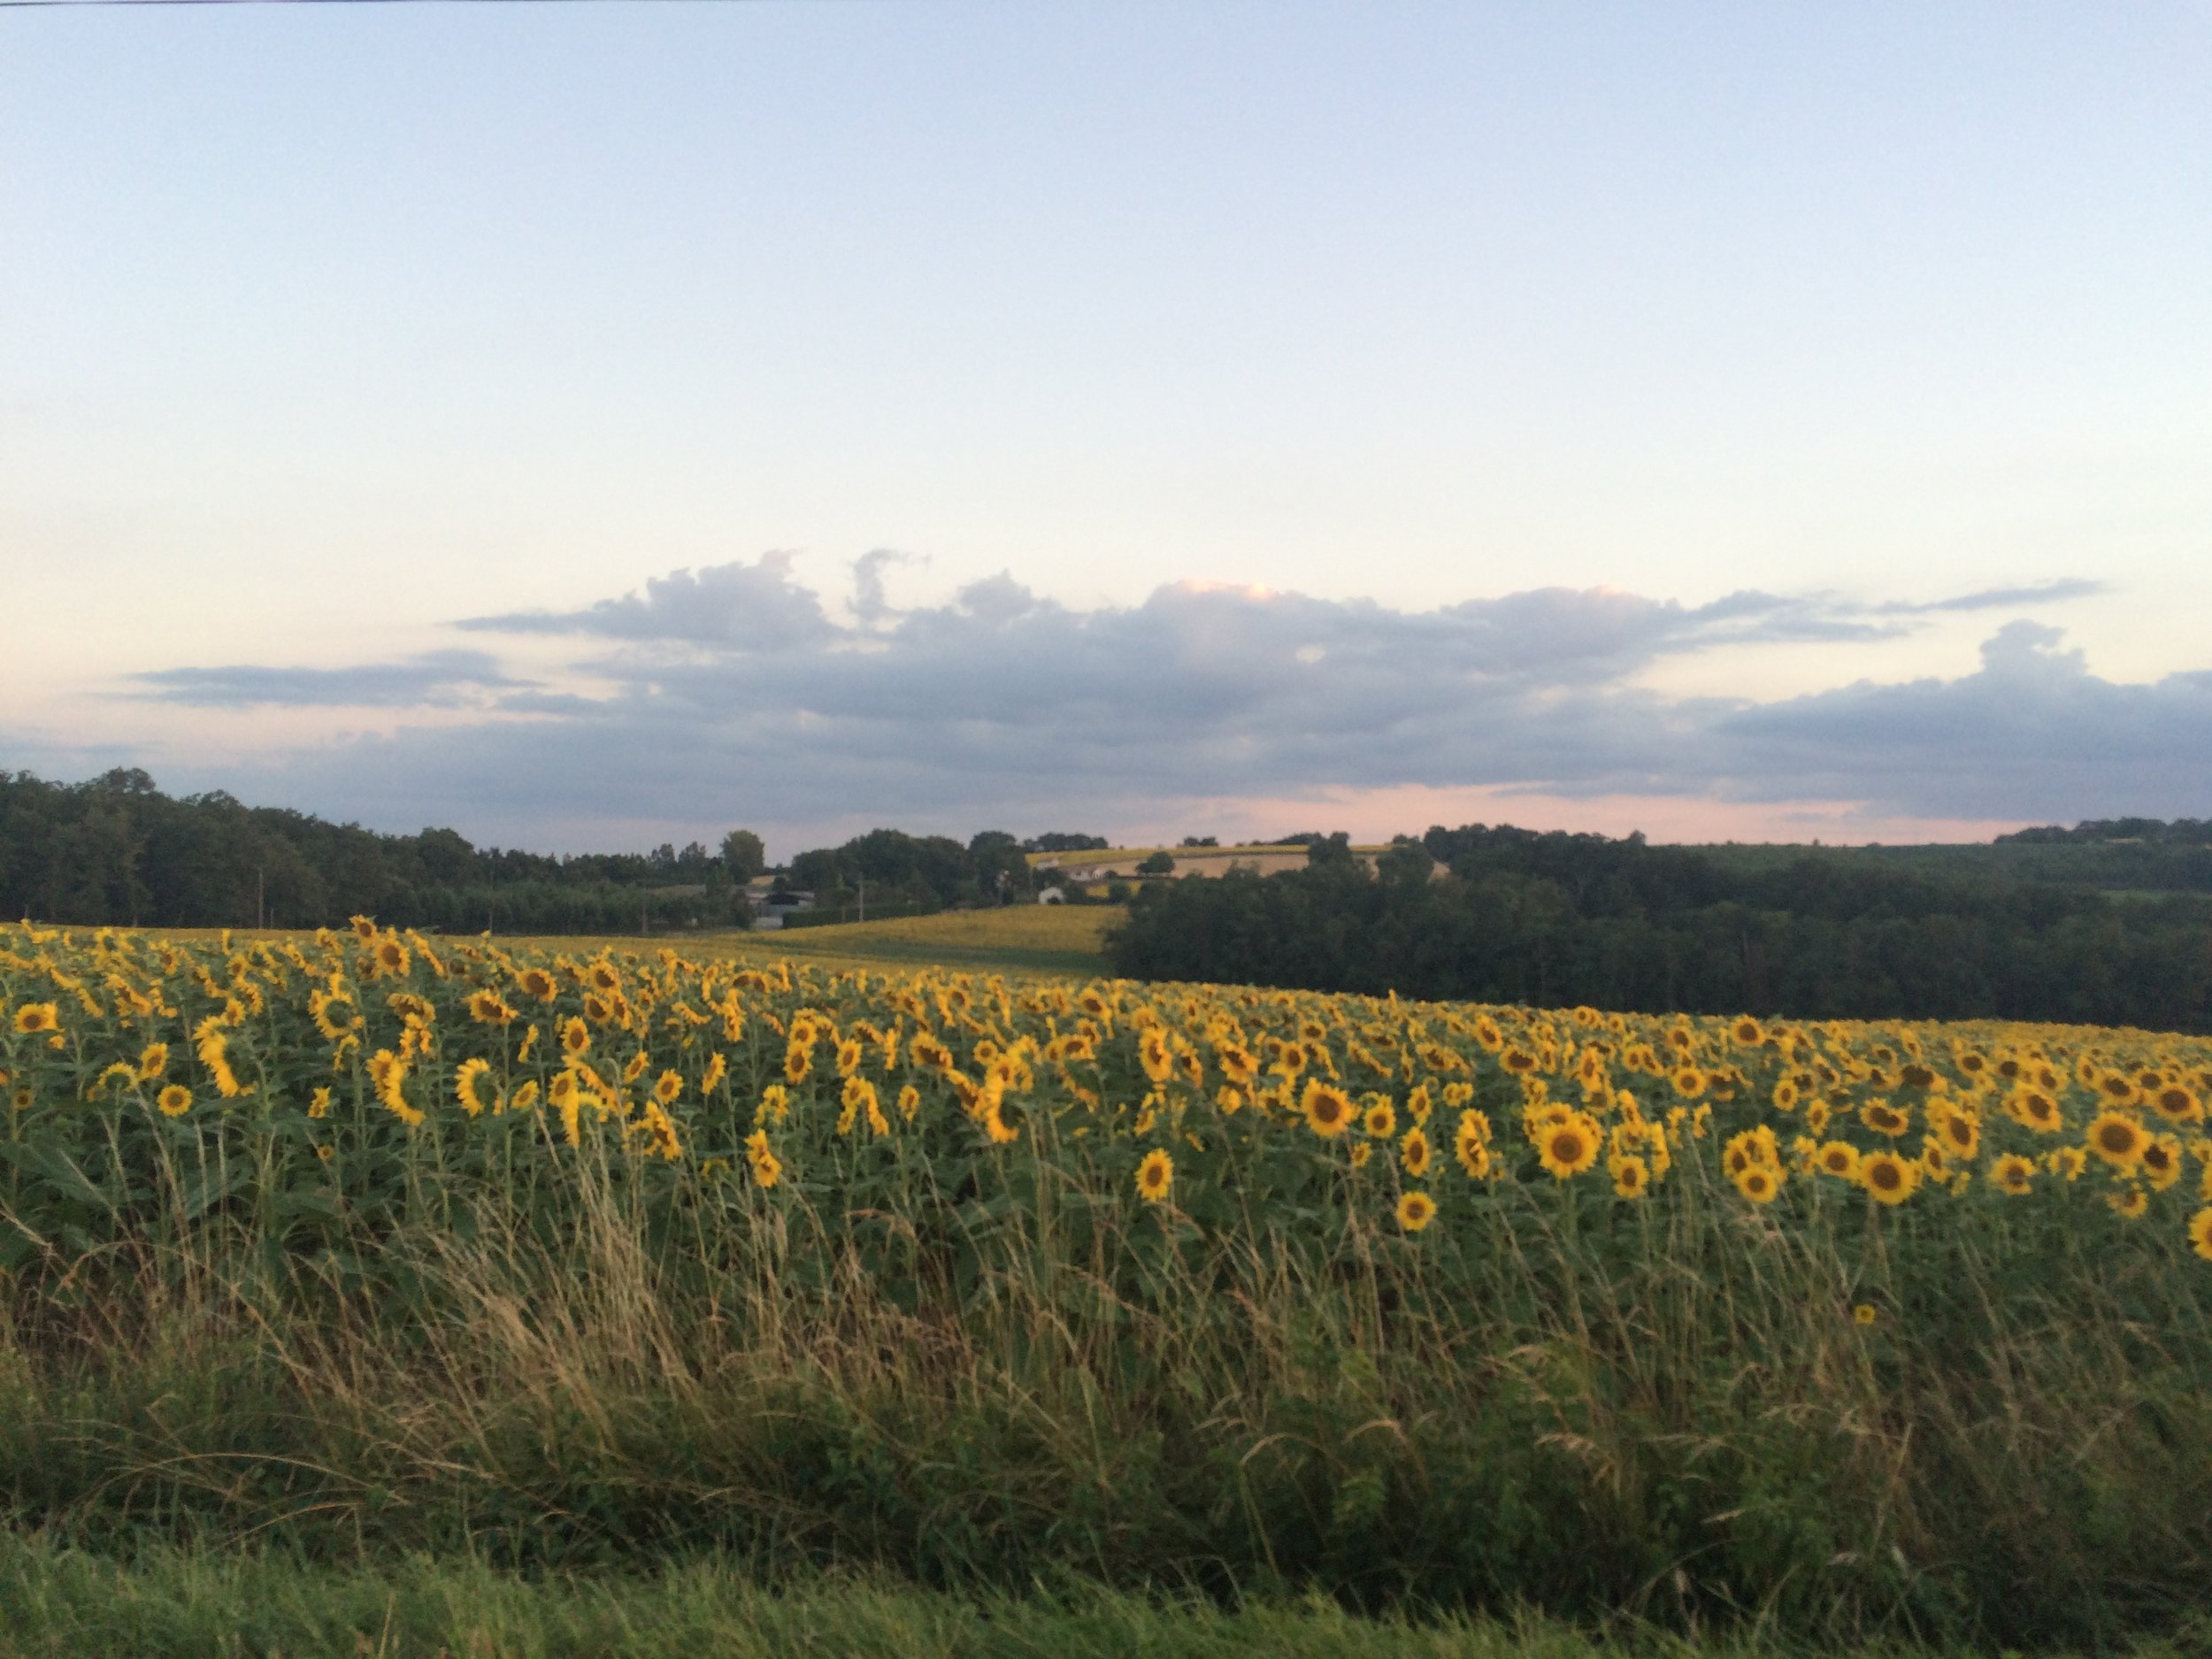 Just outside Nérac, Southwest France, on a warm July evening.